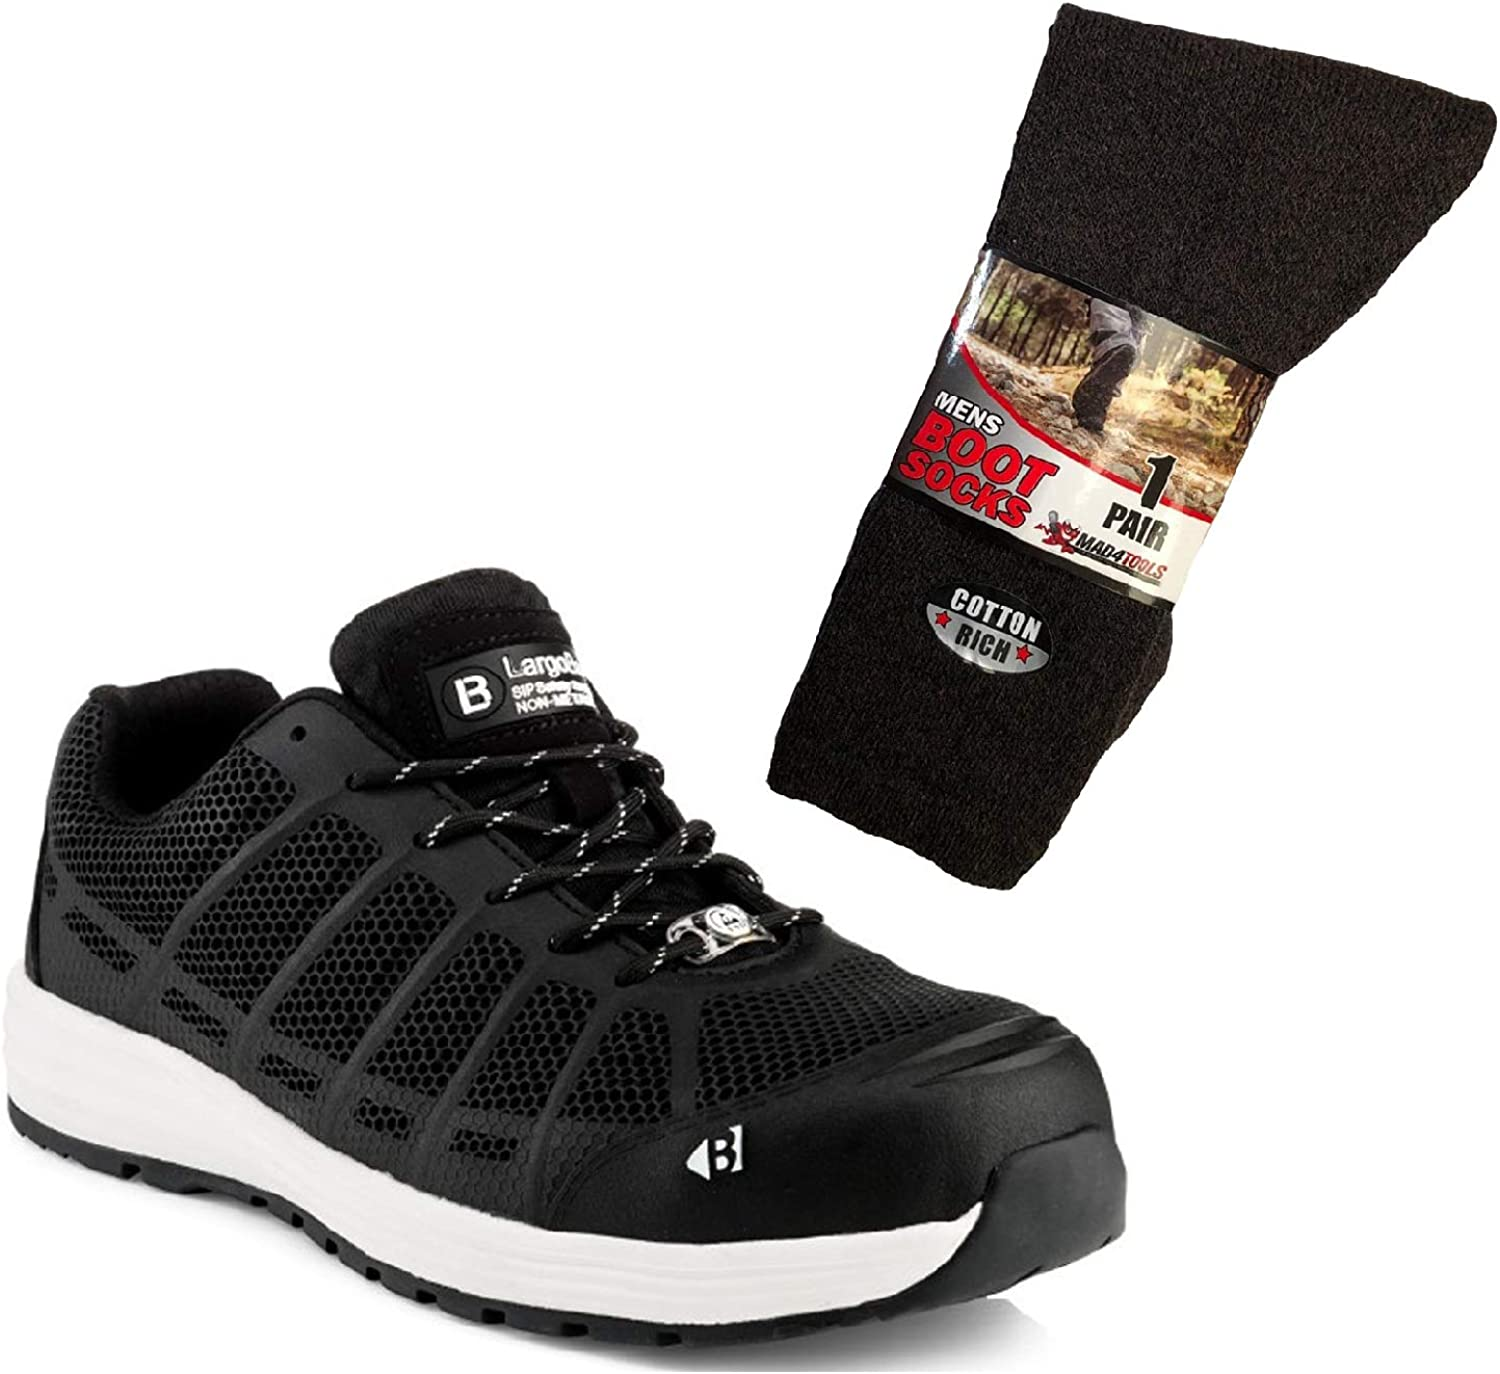 35670dab Buckler KEZ Safety Hardwearing Trade Work Trainer shoes Black Toe-Cap  Predection (Sizes 6